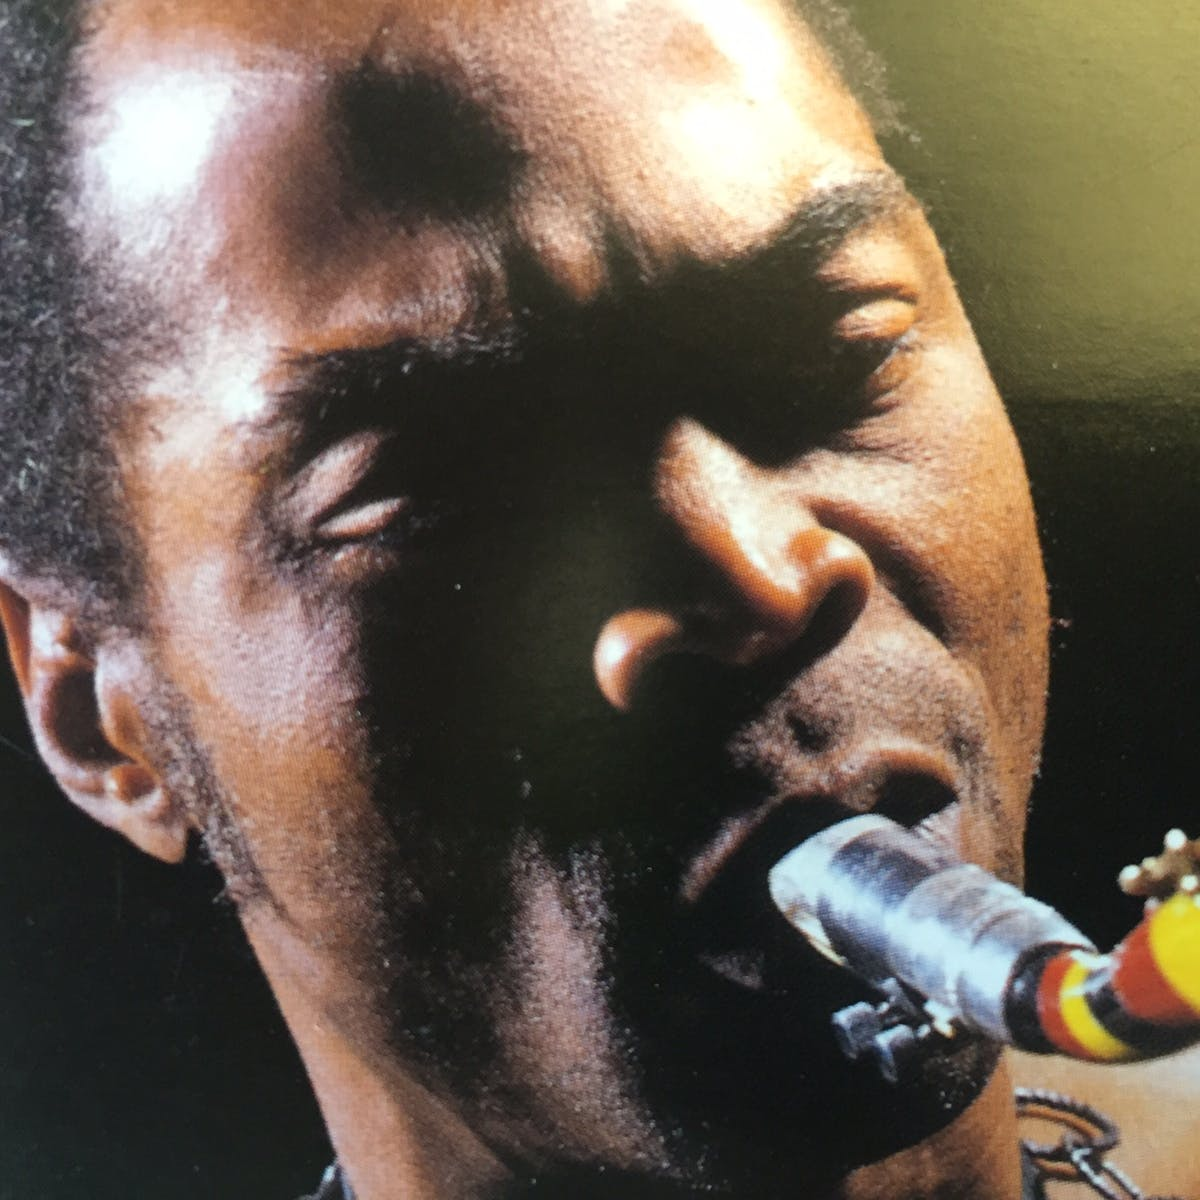 The art provocateur Fela Kuti who used sex and politics to confront